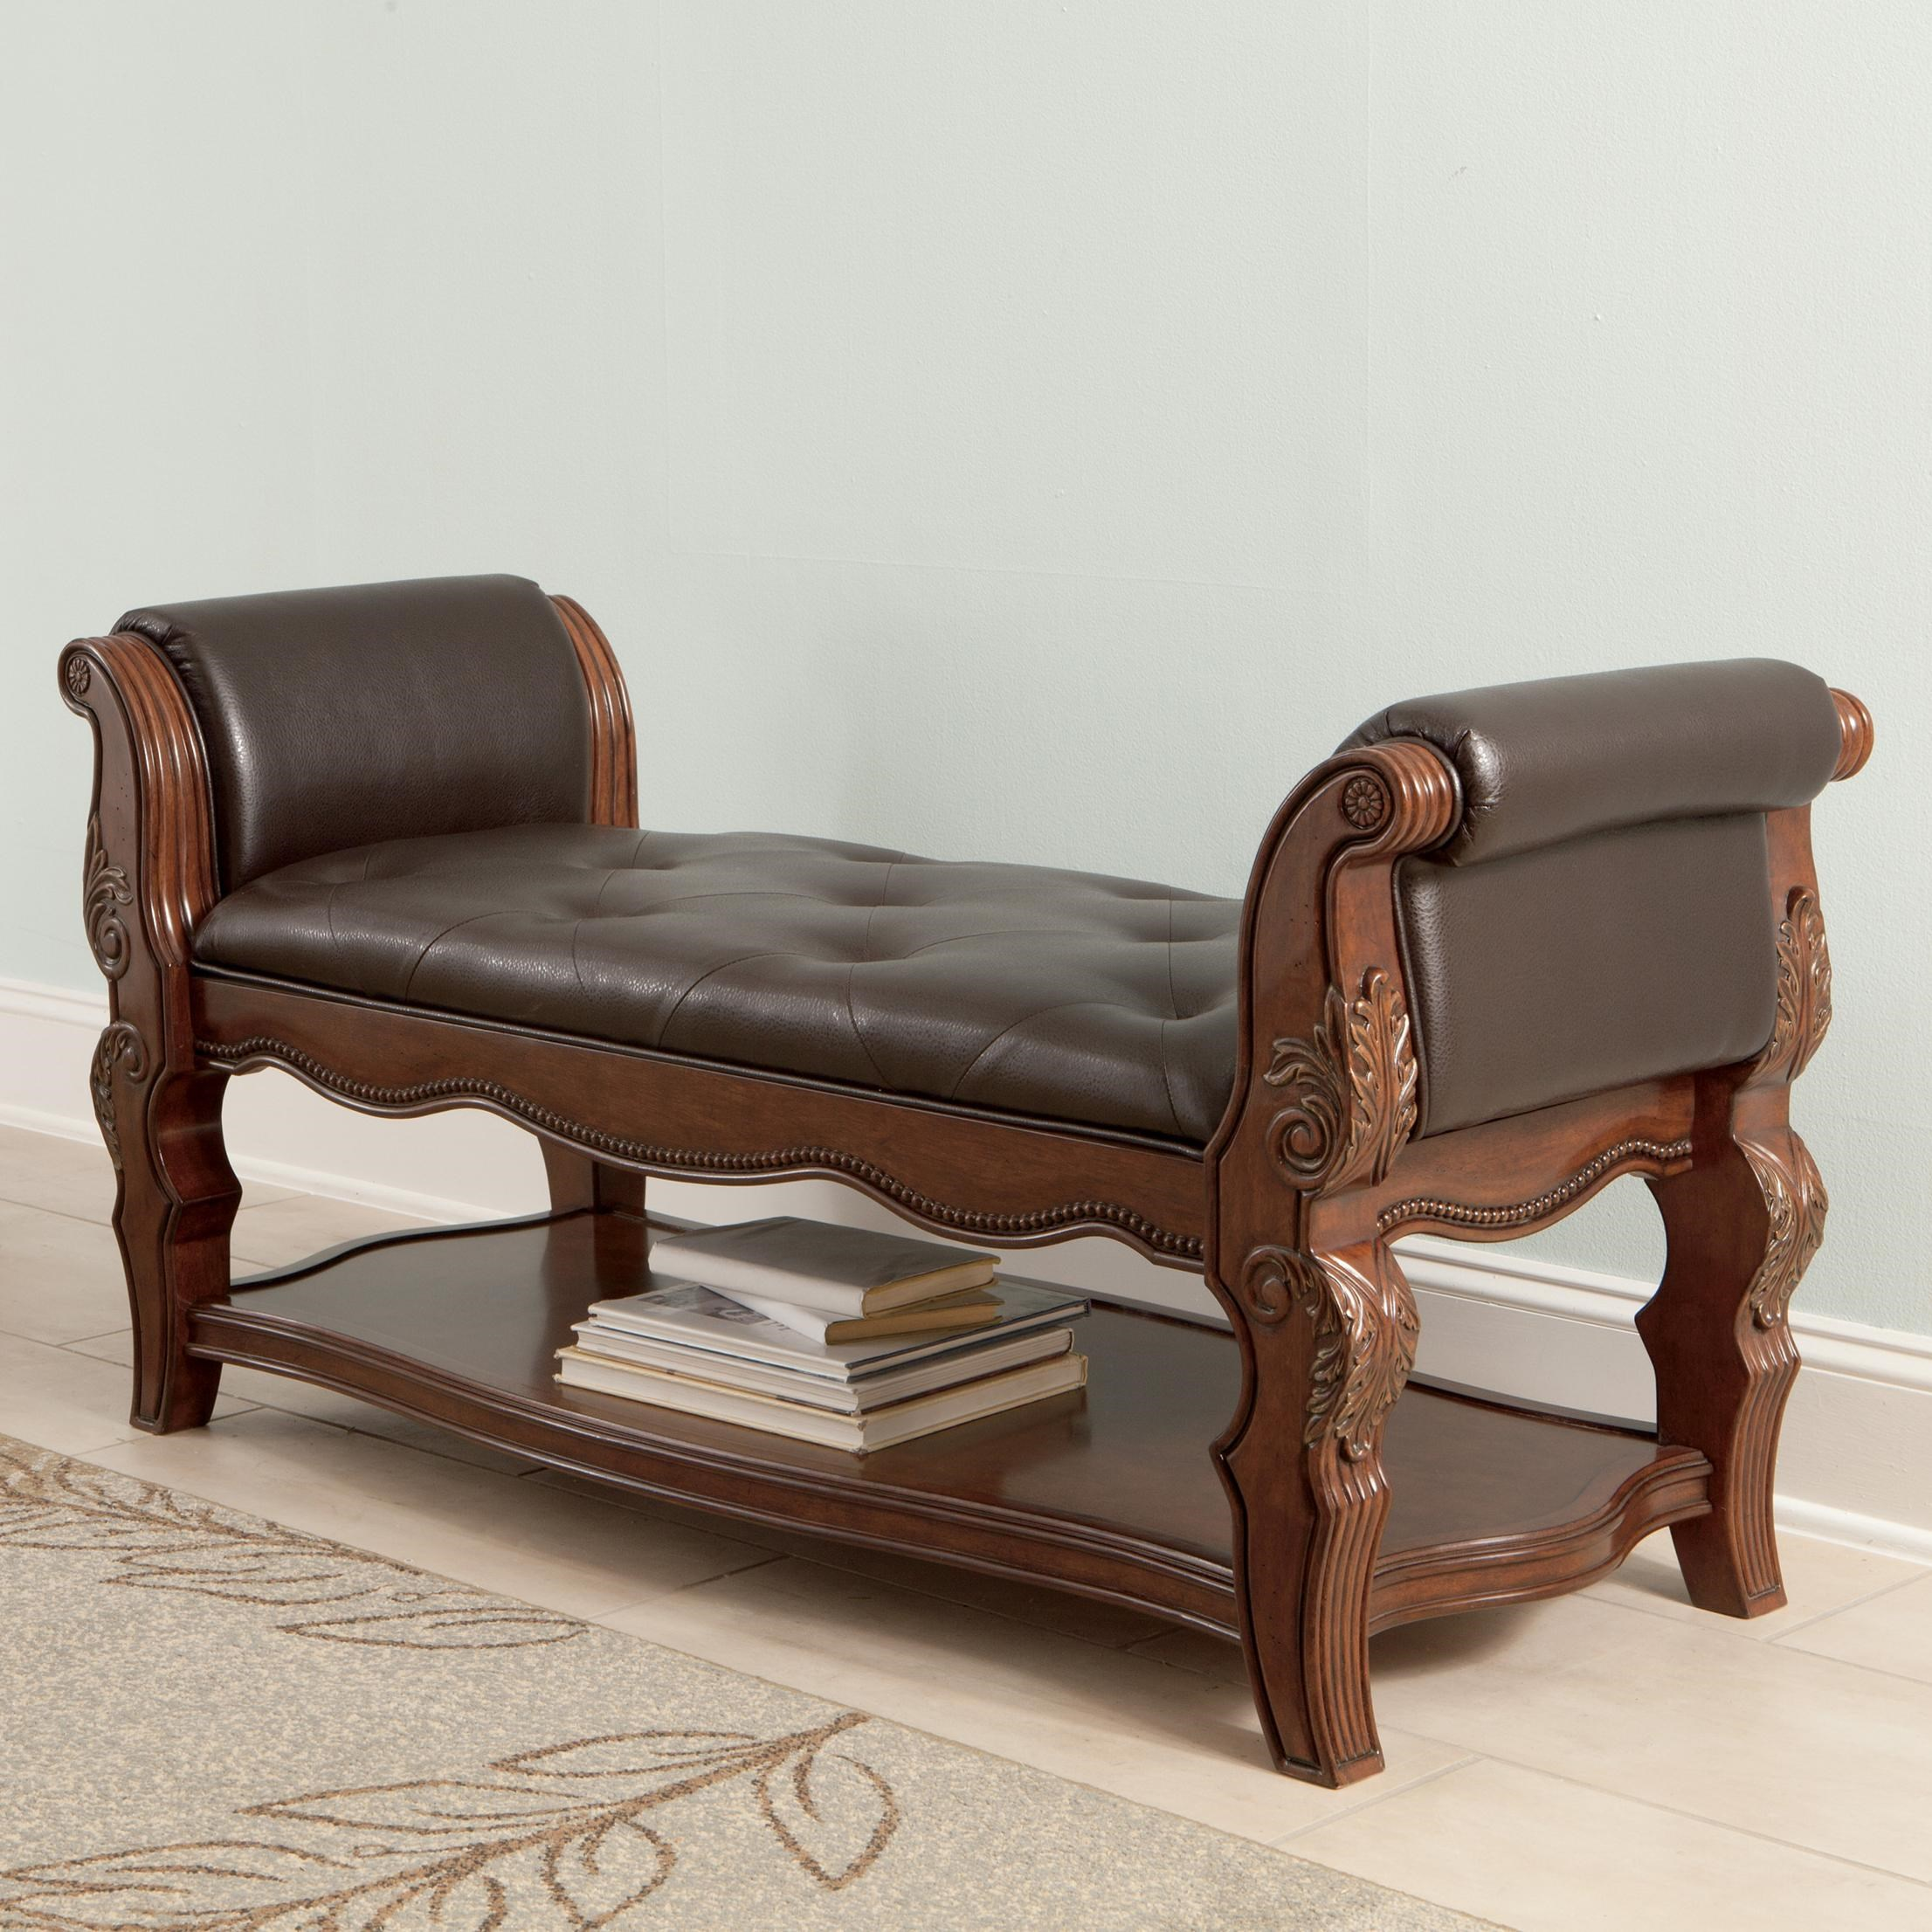 Millennium Ledelle Upholstered Bench With Tufted Faux Leather Seat   Del  Sol Furniture   Upholstered Benches